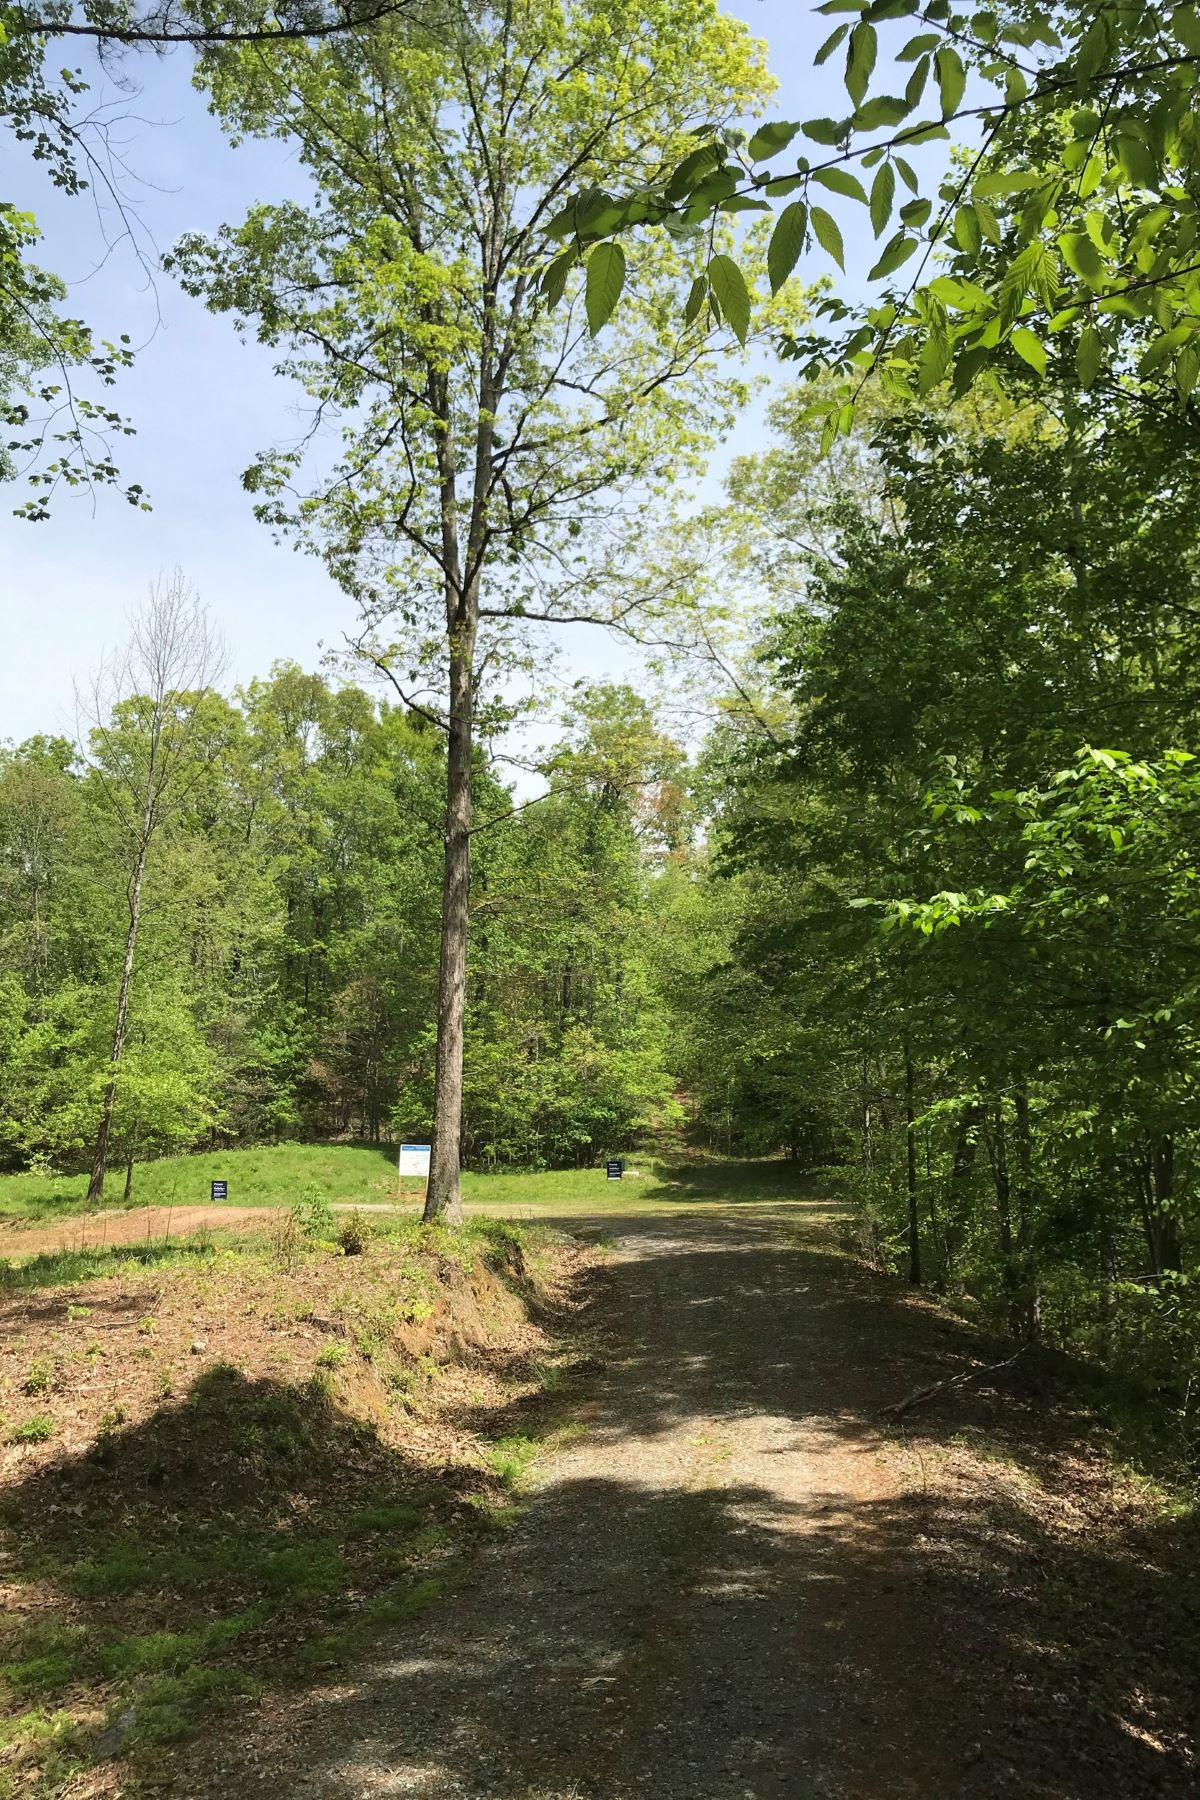 Land for Sale at Lot #69 Ash Creek Lane #69 Ash Creek Lane Rutherfordton, North Carolina 28139 United States